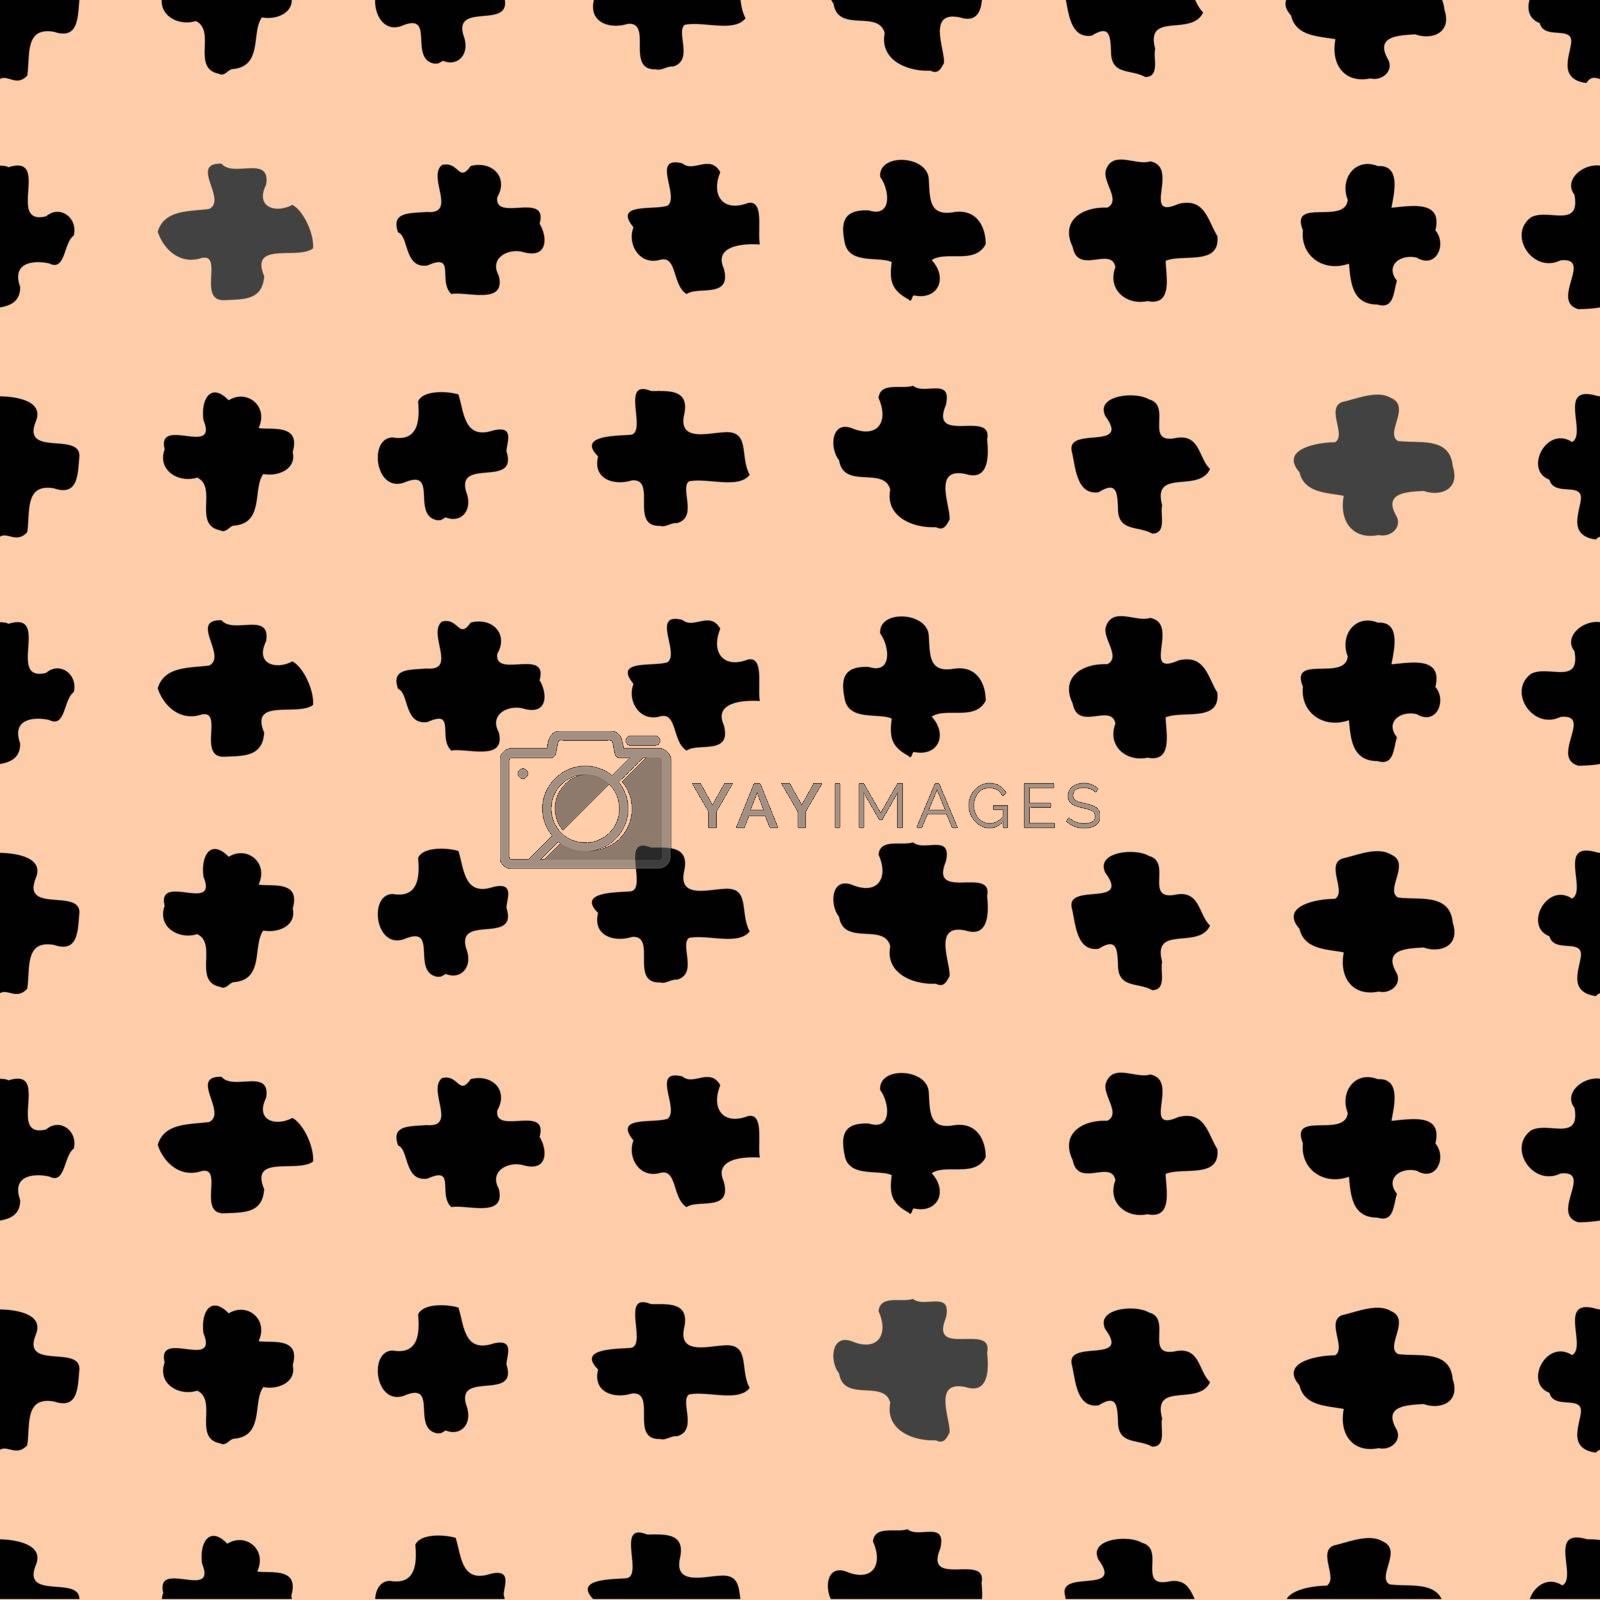 Hand drawn abstract seamless repeat pattern with cross shapes in black on a pastel pink background.